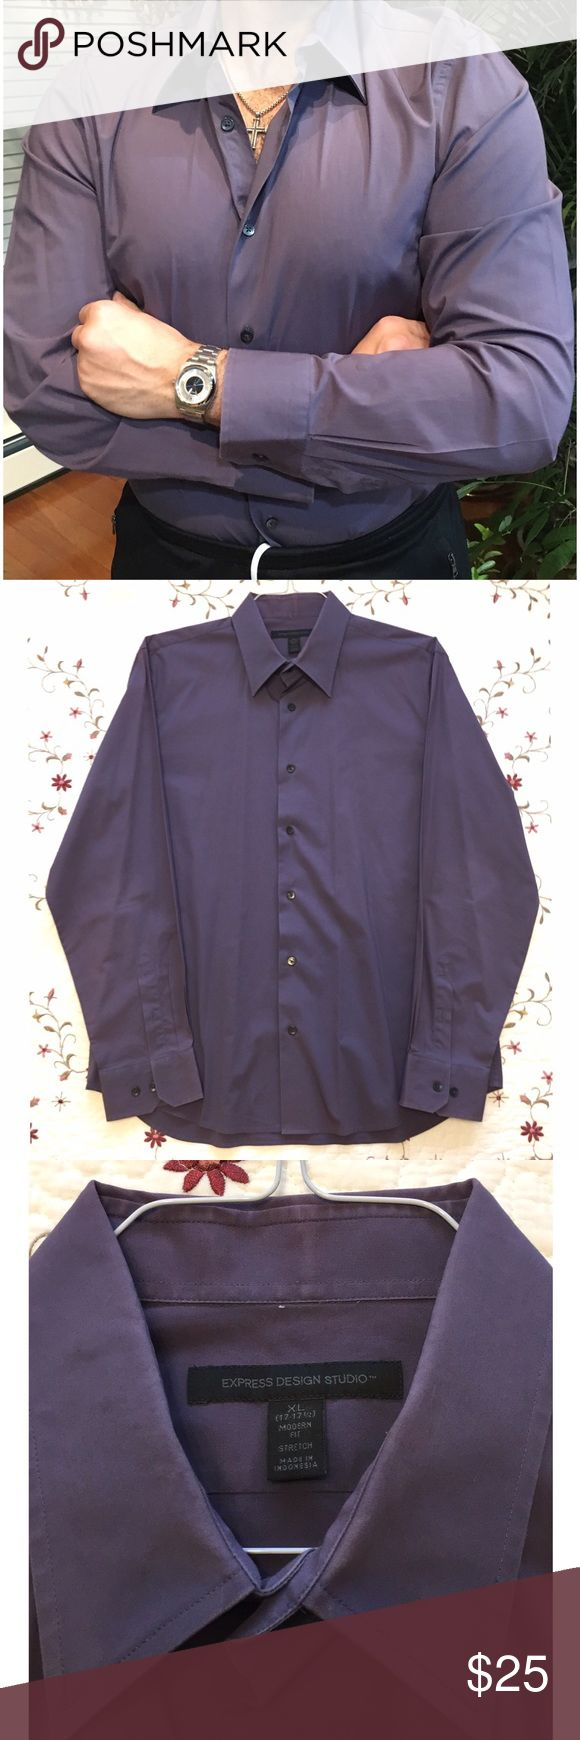 Mauve colored dress shirt